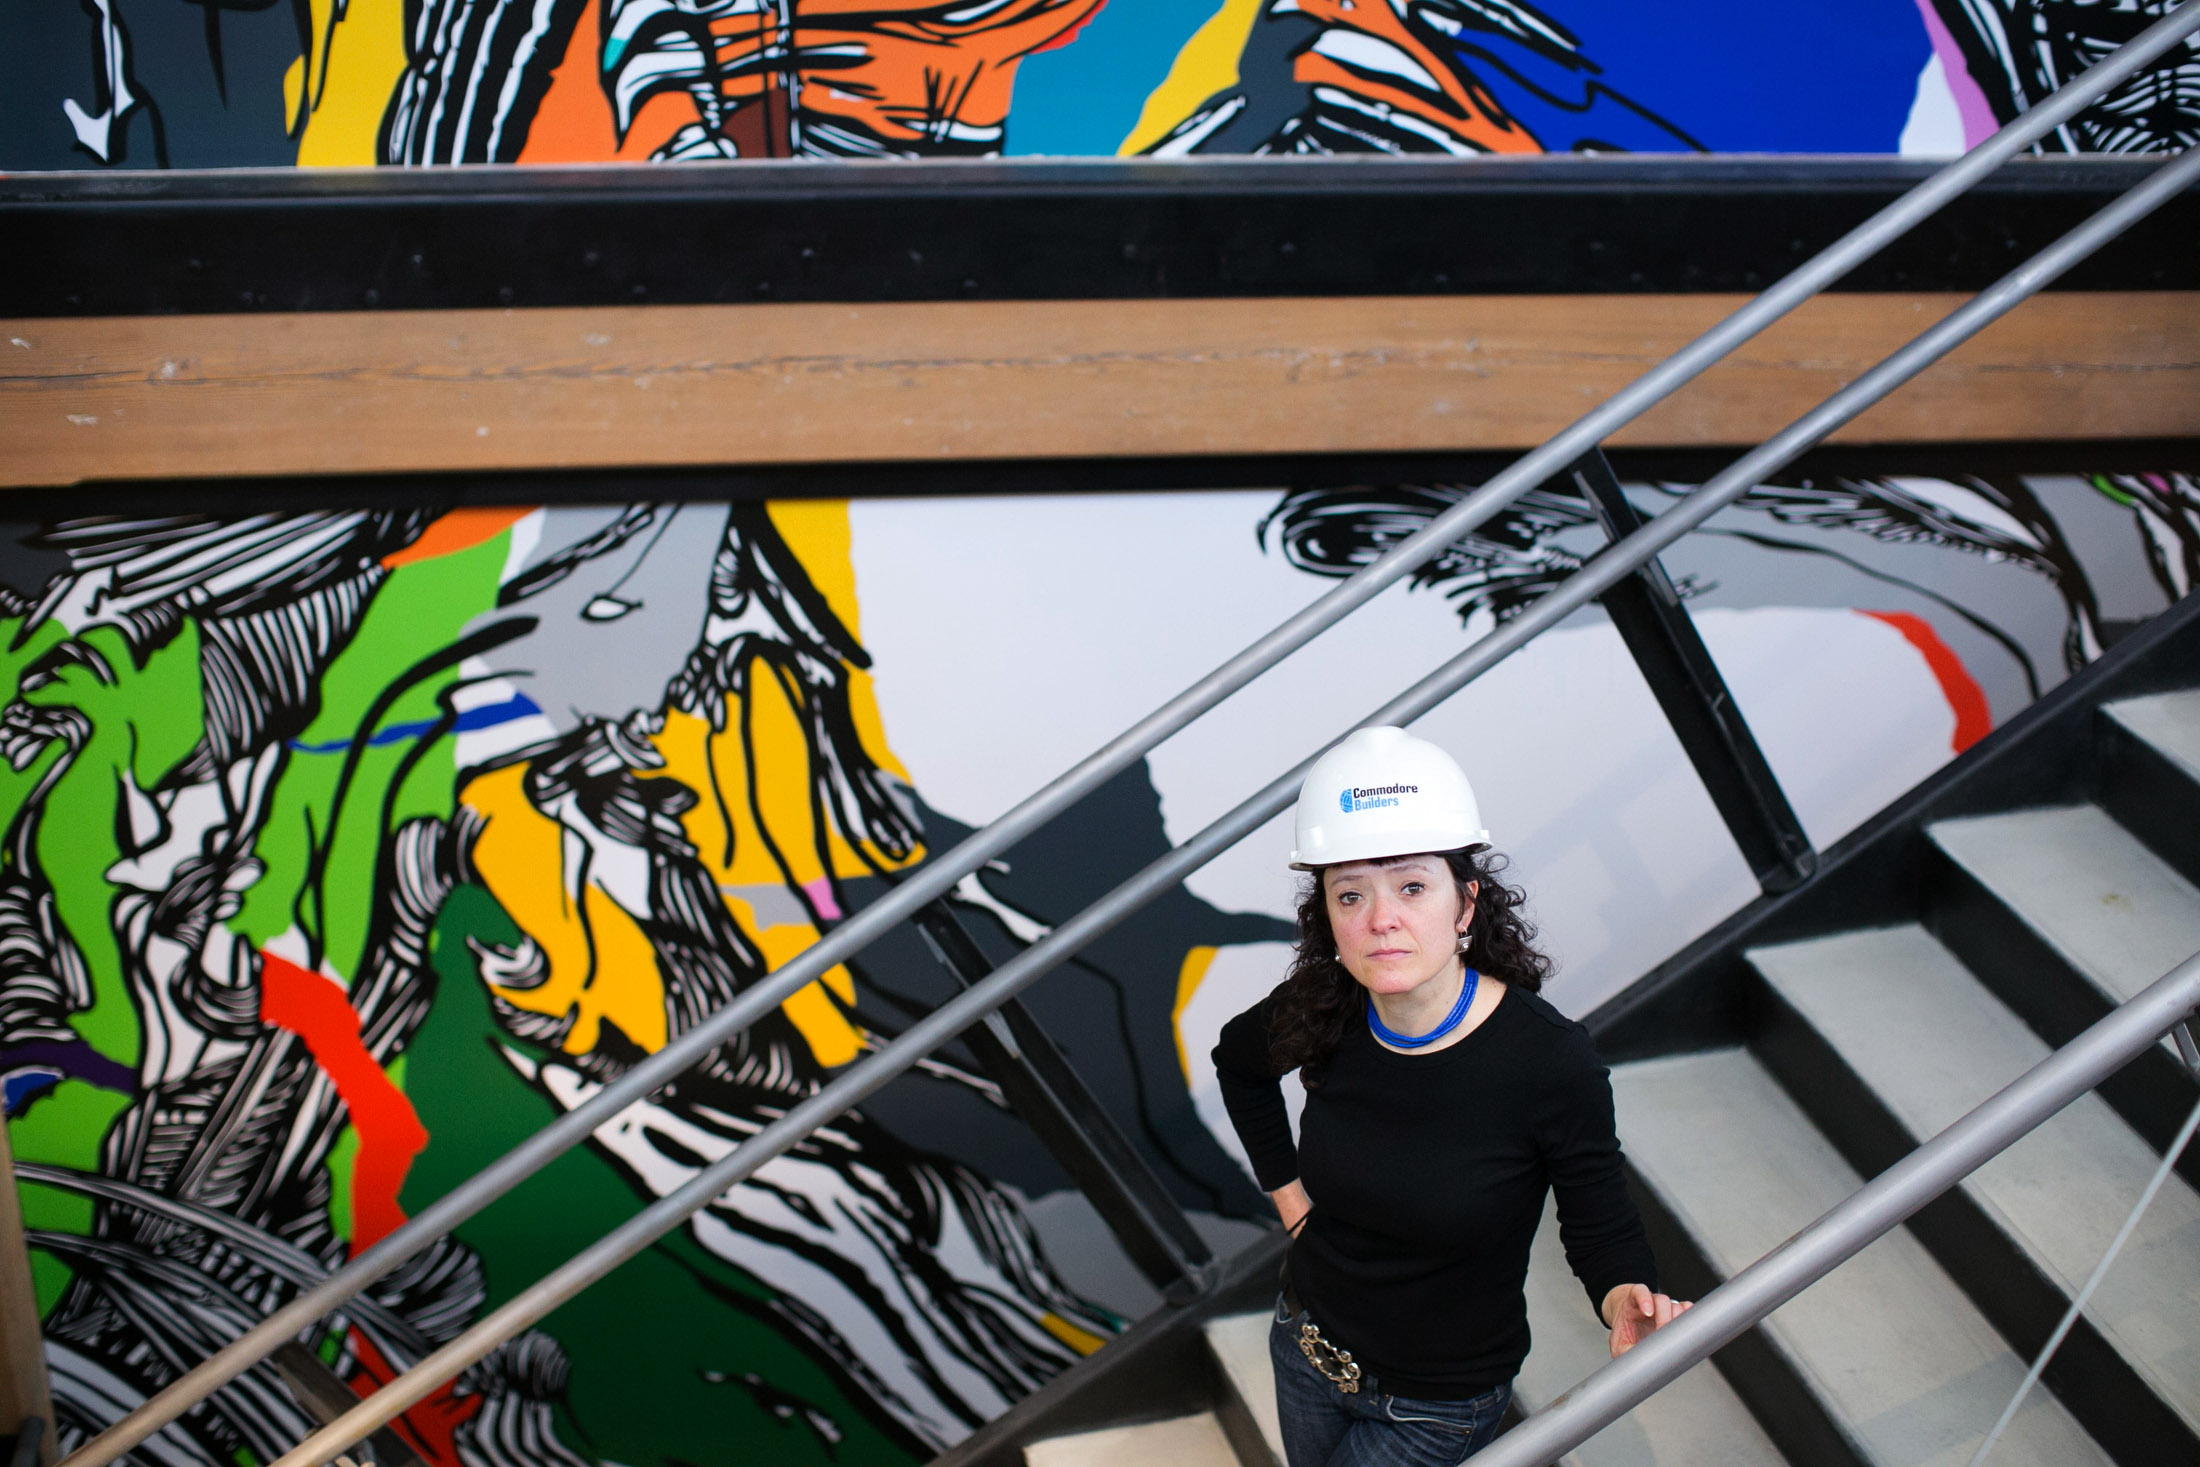 Mural artist Sophia Ainsley poses with her piece titled 'In Person, 574' which is being installed in the renovated 574 Boston Avenue in Medford, Massachusetts on Thursday, March 12, 2015.